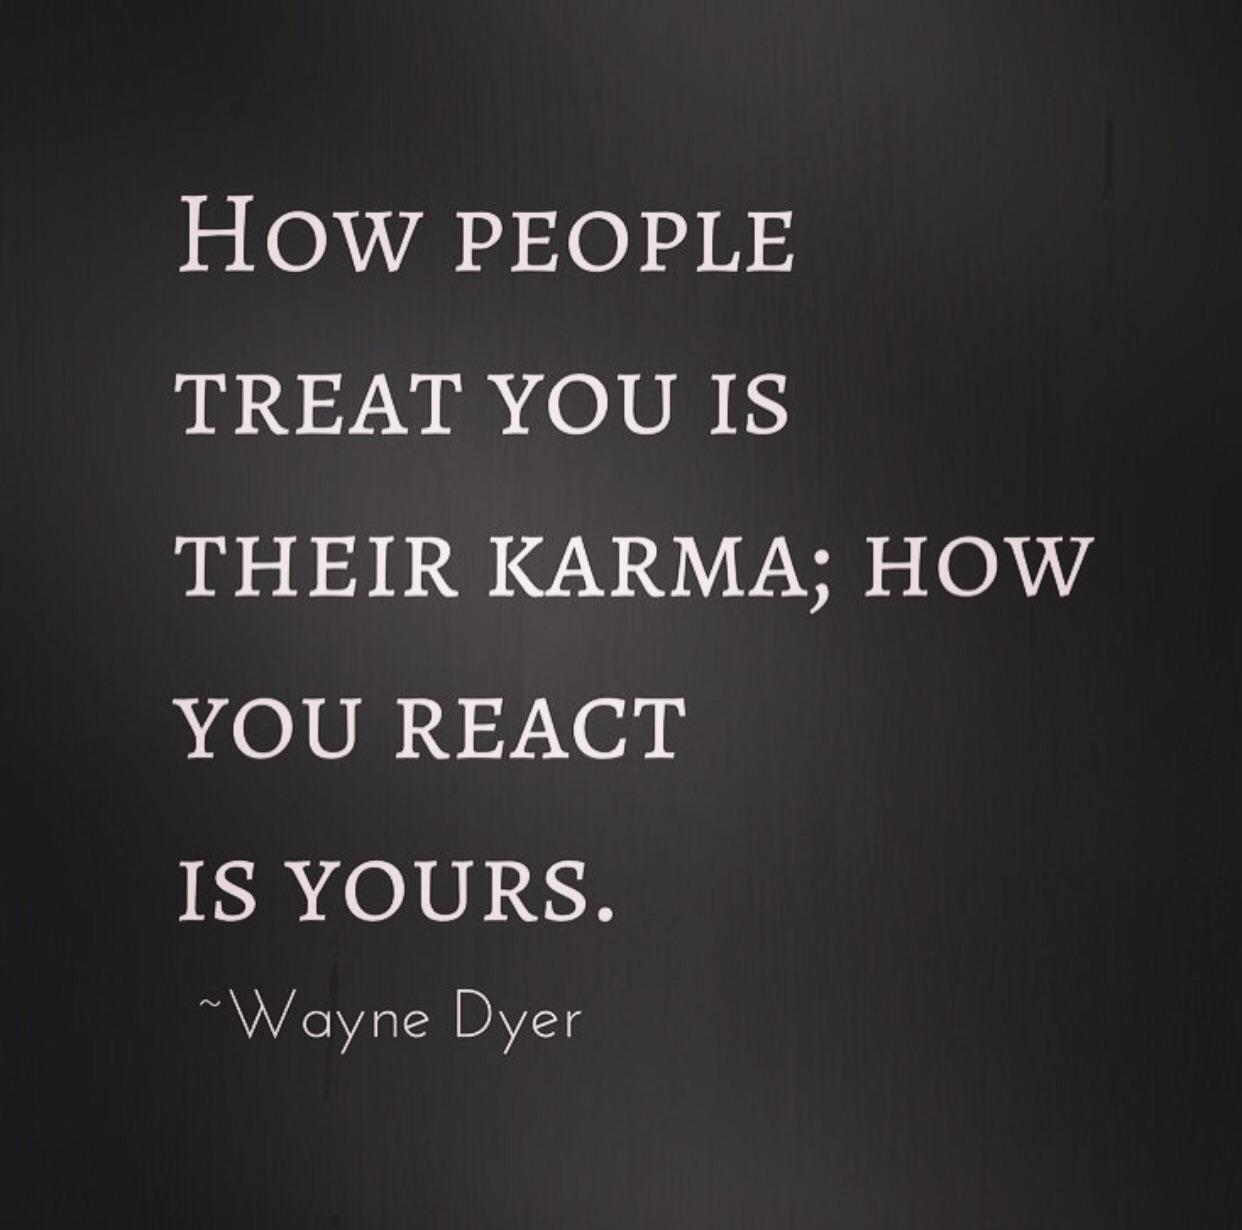 [image] The way people treat you is a statement about who they are, it's not about you.